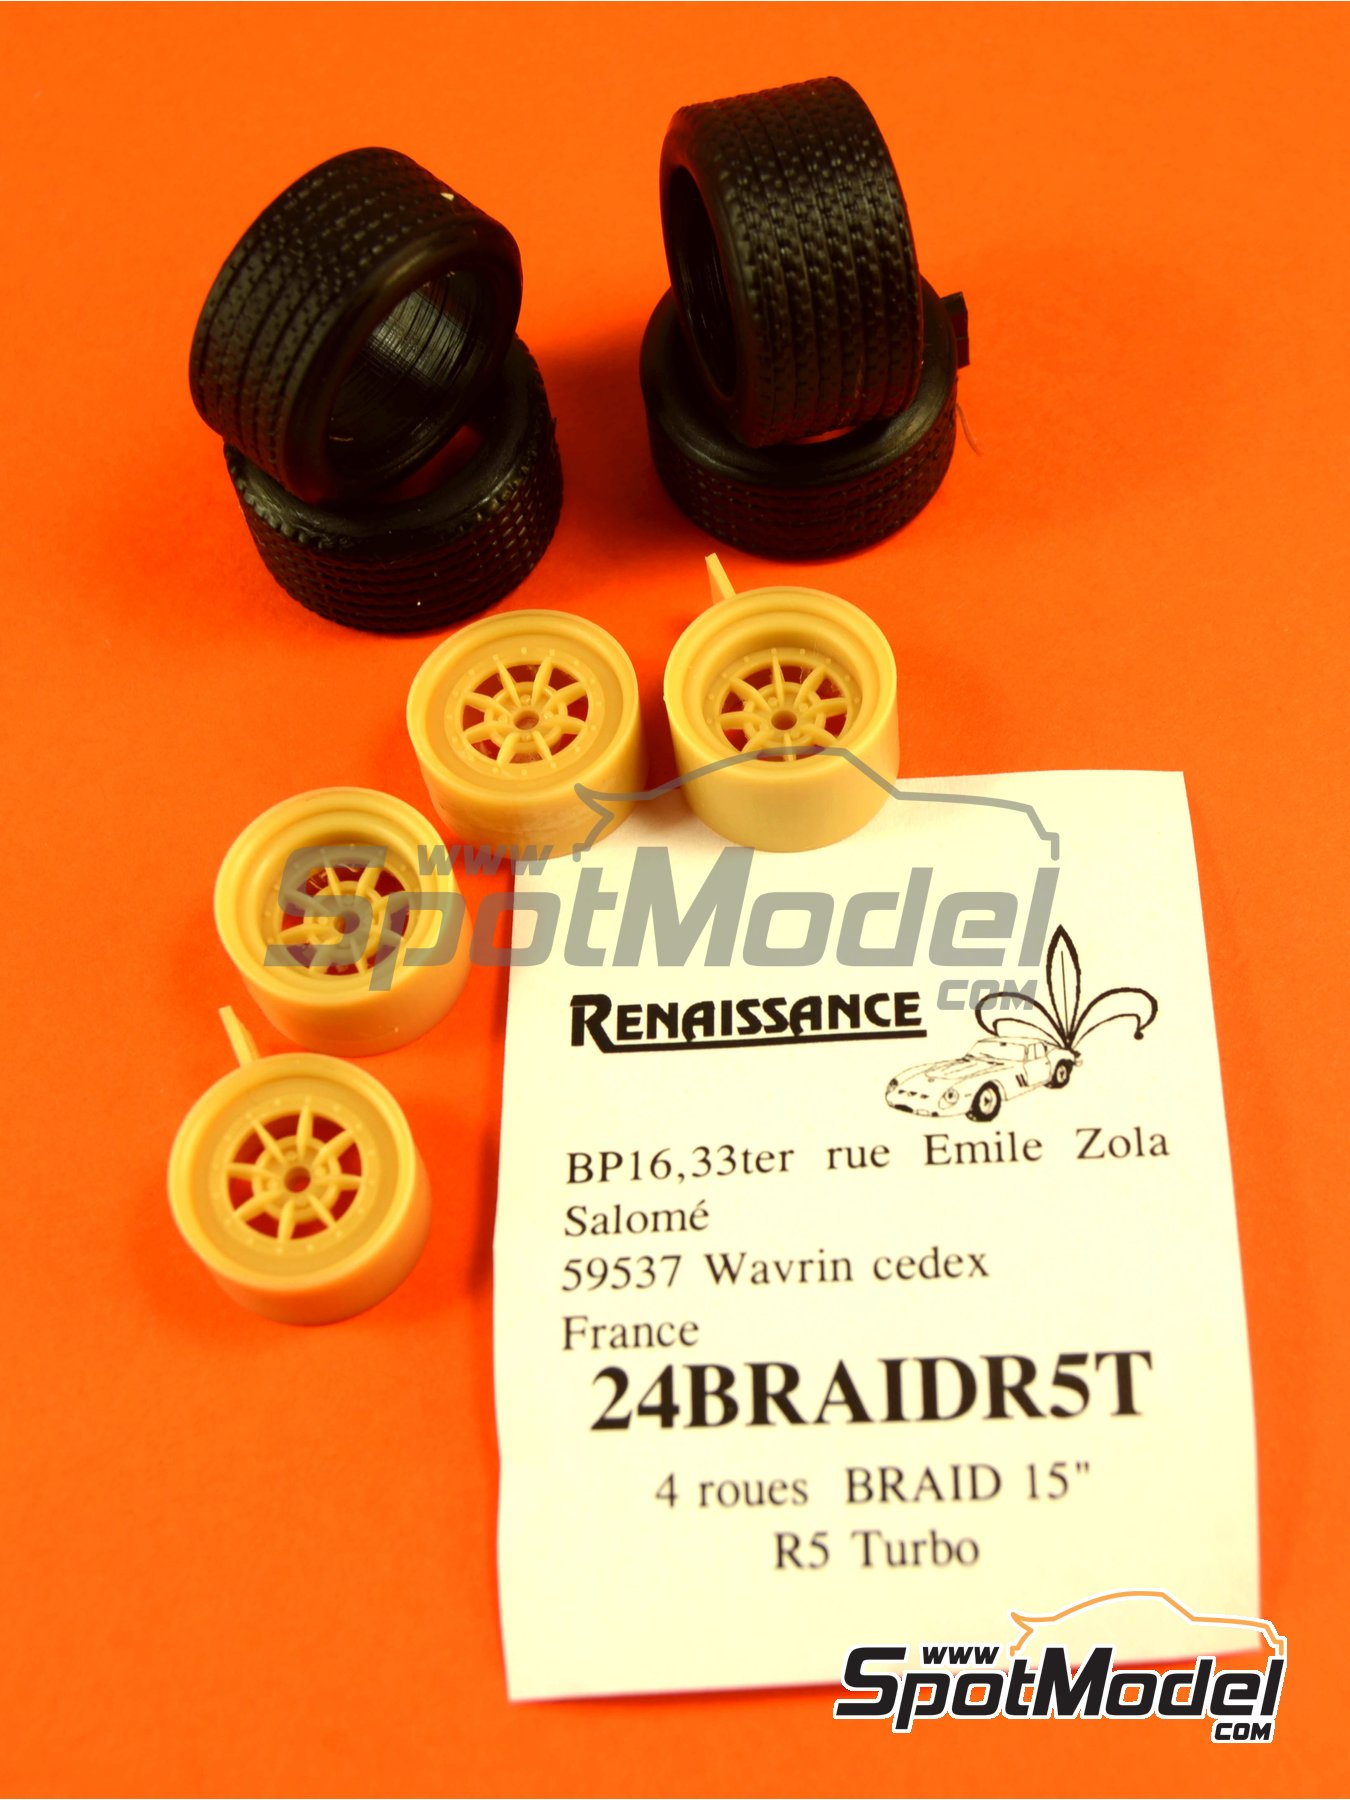 Braid 15 inches | Rims and tyres set in 1/24 scale manufactured by Renaissance Models (ref.24BRAIDR5T) image